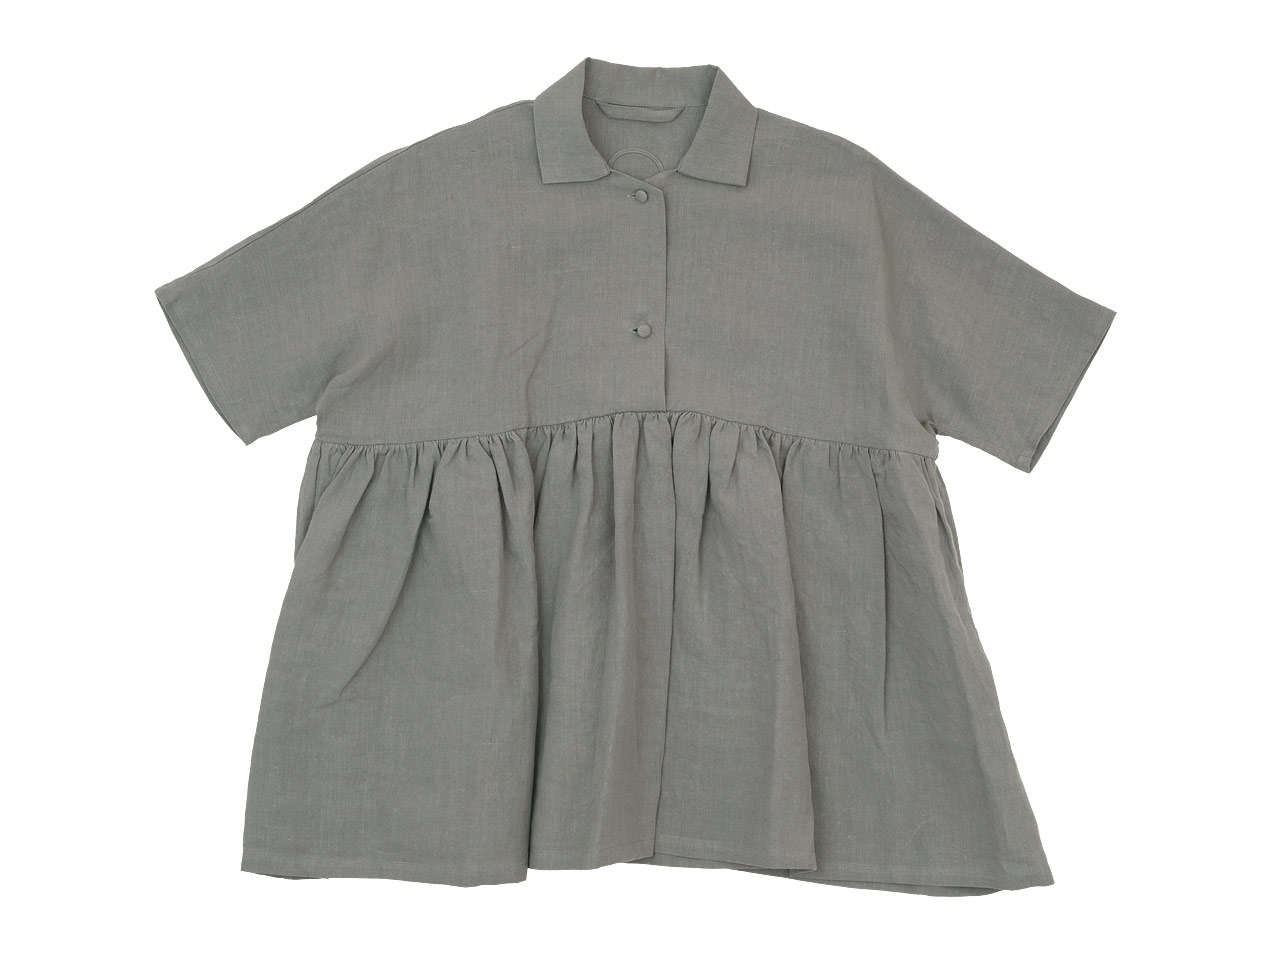 Lin francais d'antan Breton(ブルトン) Short Sleeve Shirts